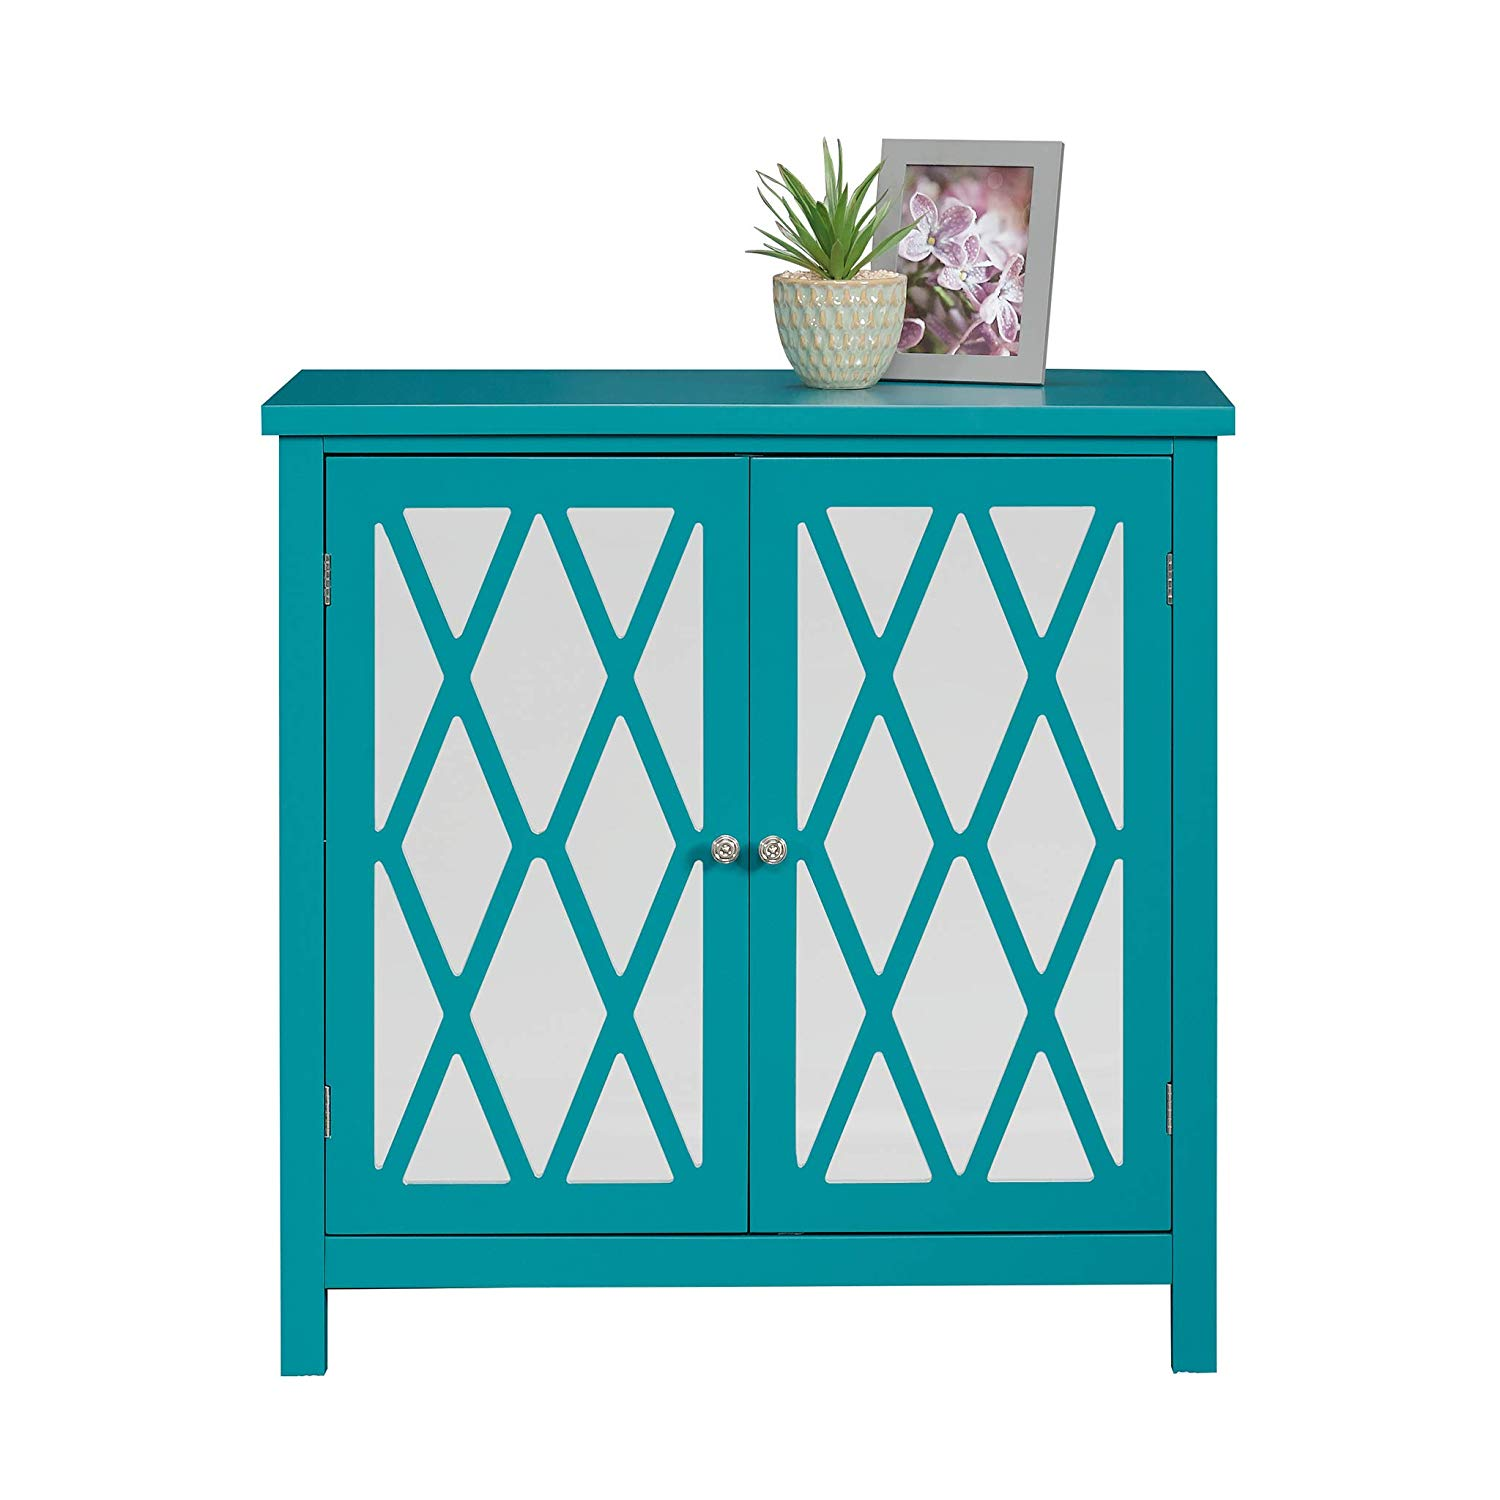 sauder harbor view accent storage cabinet fretwork table blue caribean finish kitchen dining cylinder end sofa and tables small coffee legs modern outdoor ikea wood silver metal